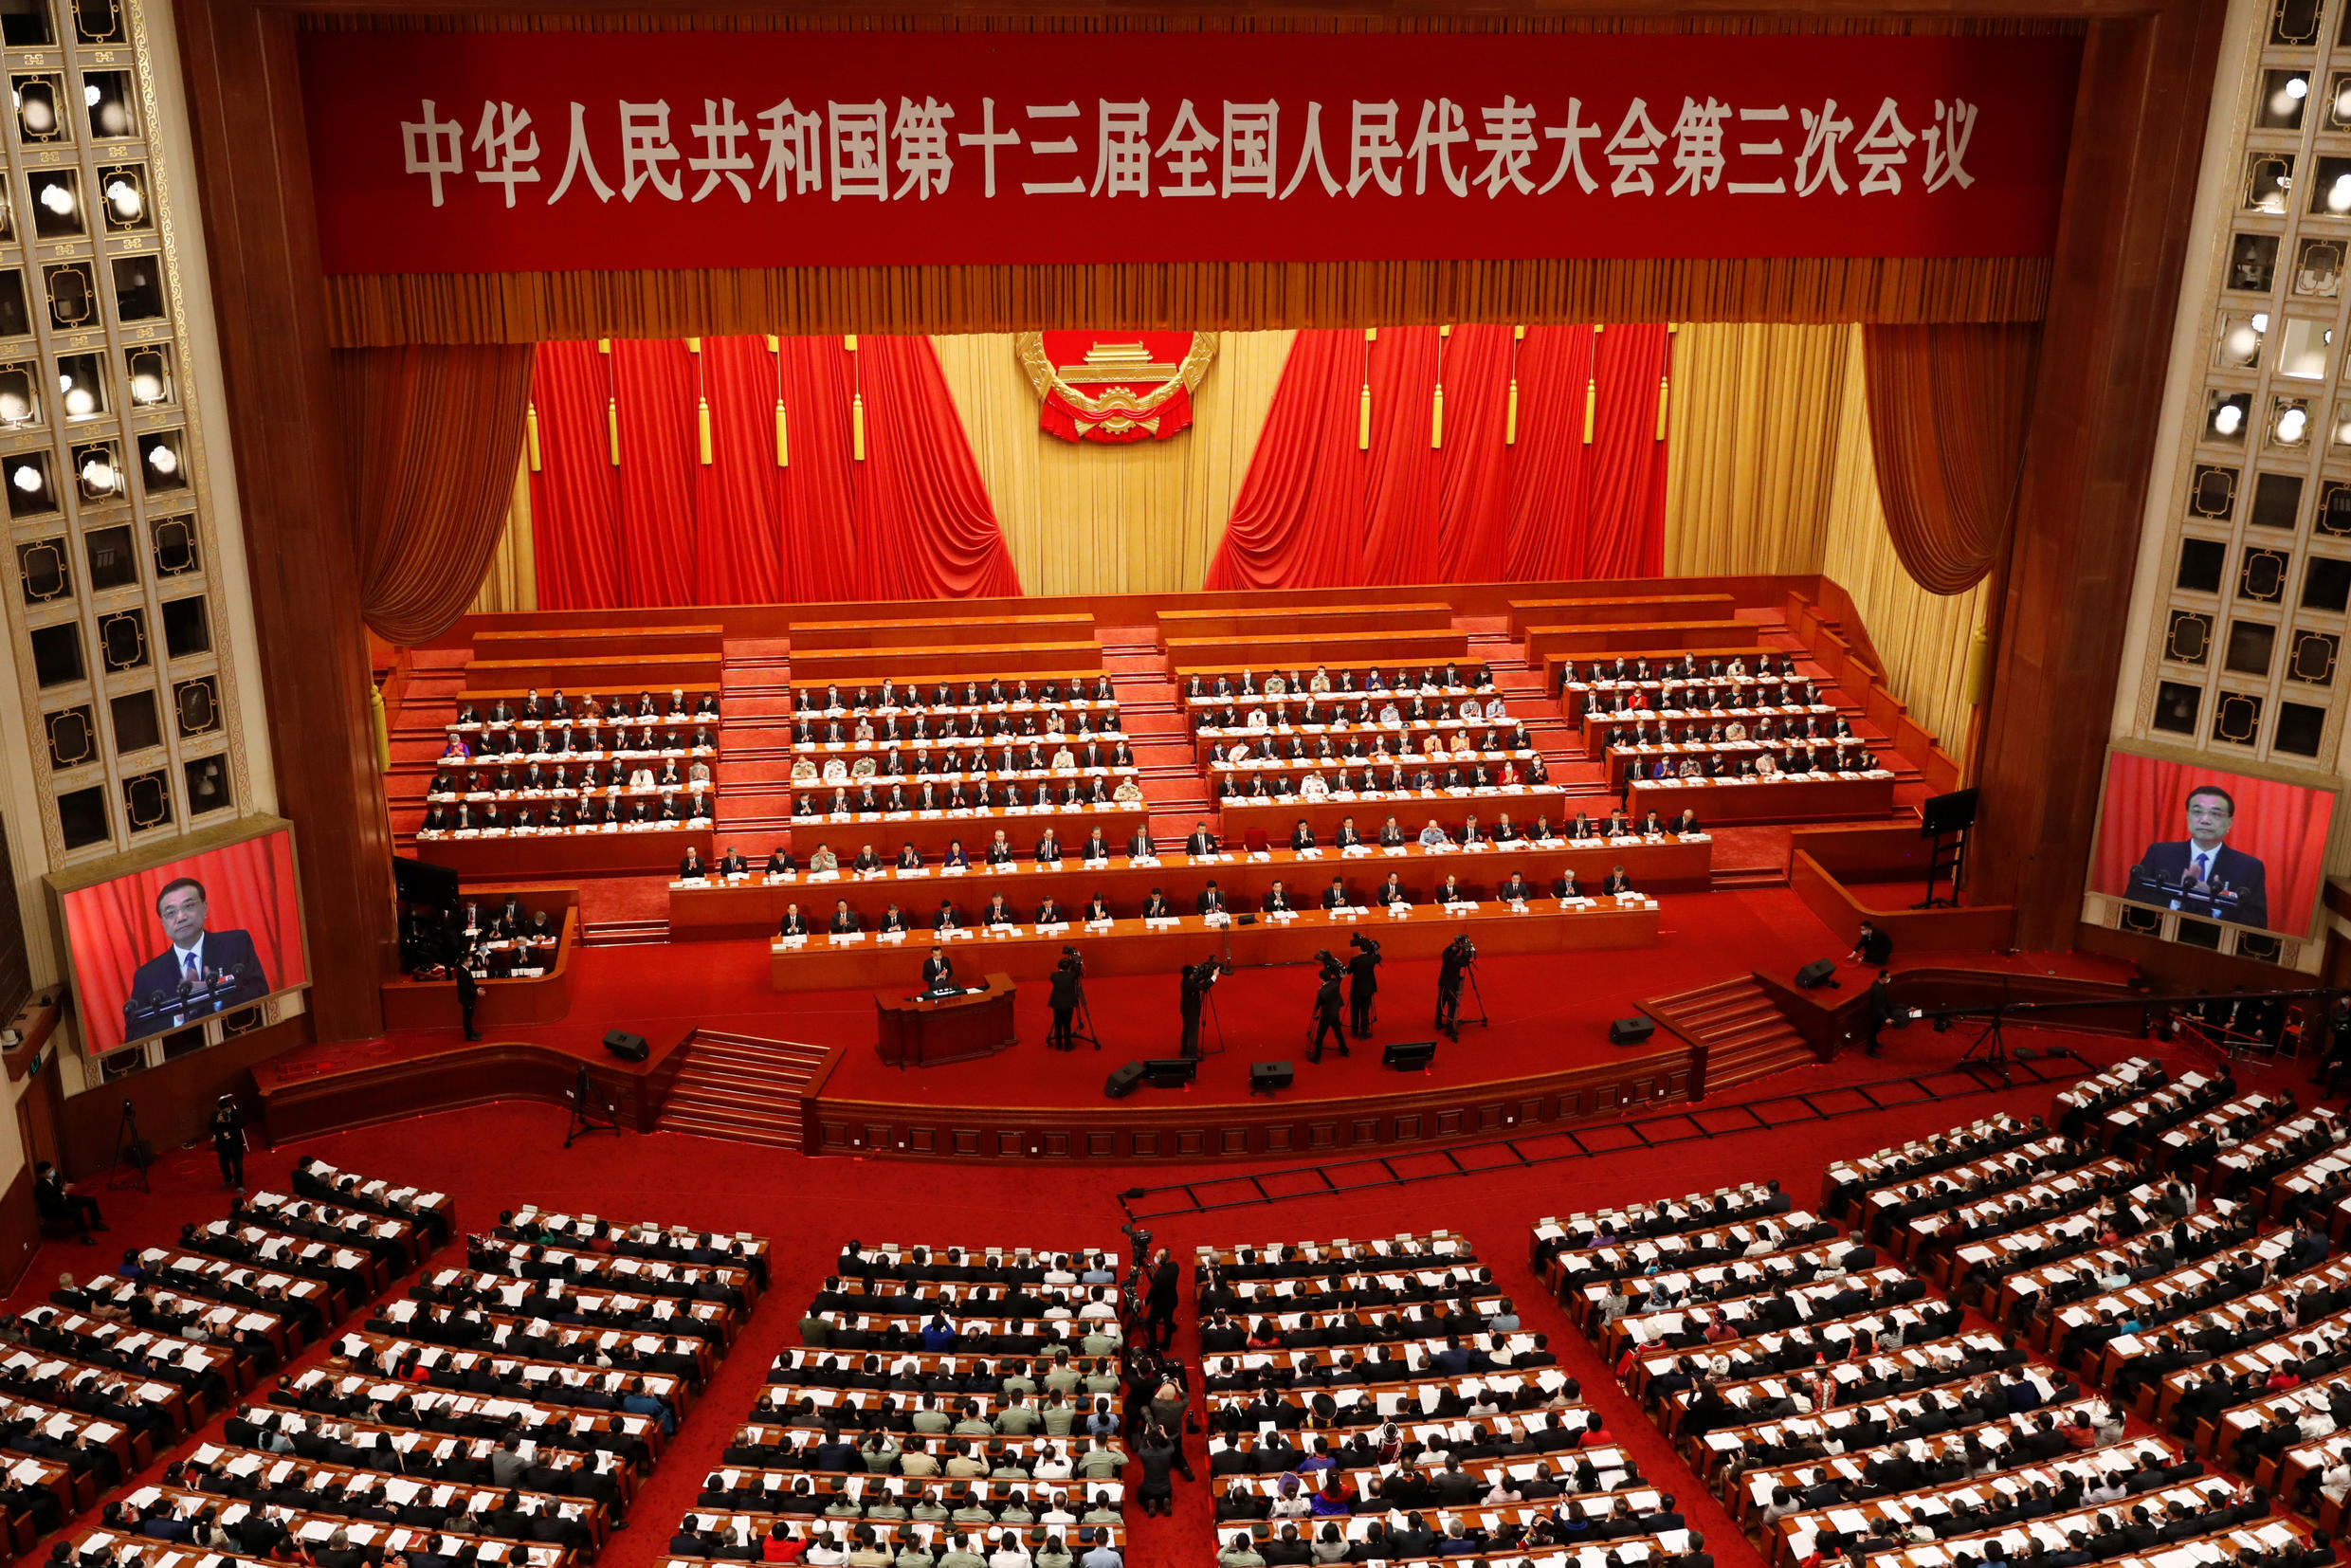 2020-05-22T012808Z_1557197360_RC2DTG9FD4ZK_RTRMADP_3_CHINA-PARLIAMENT